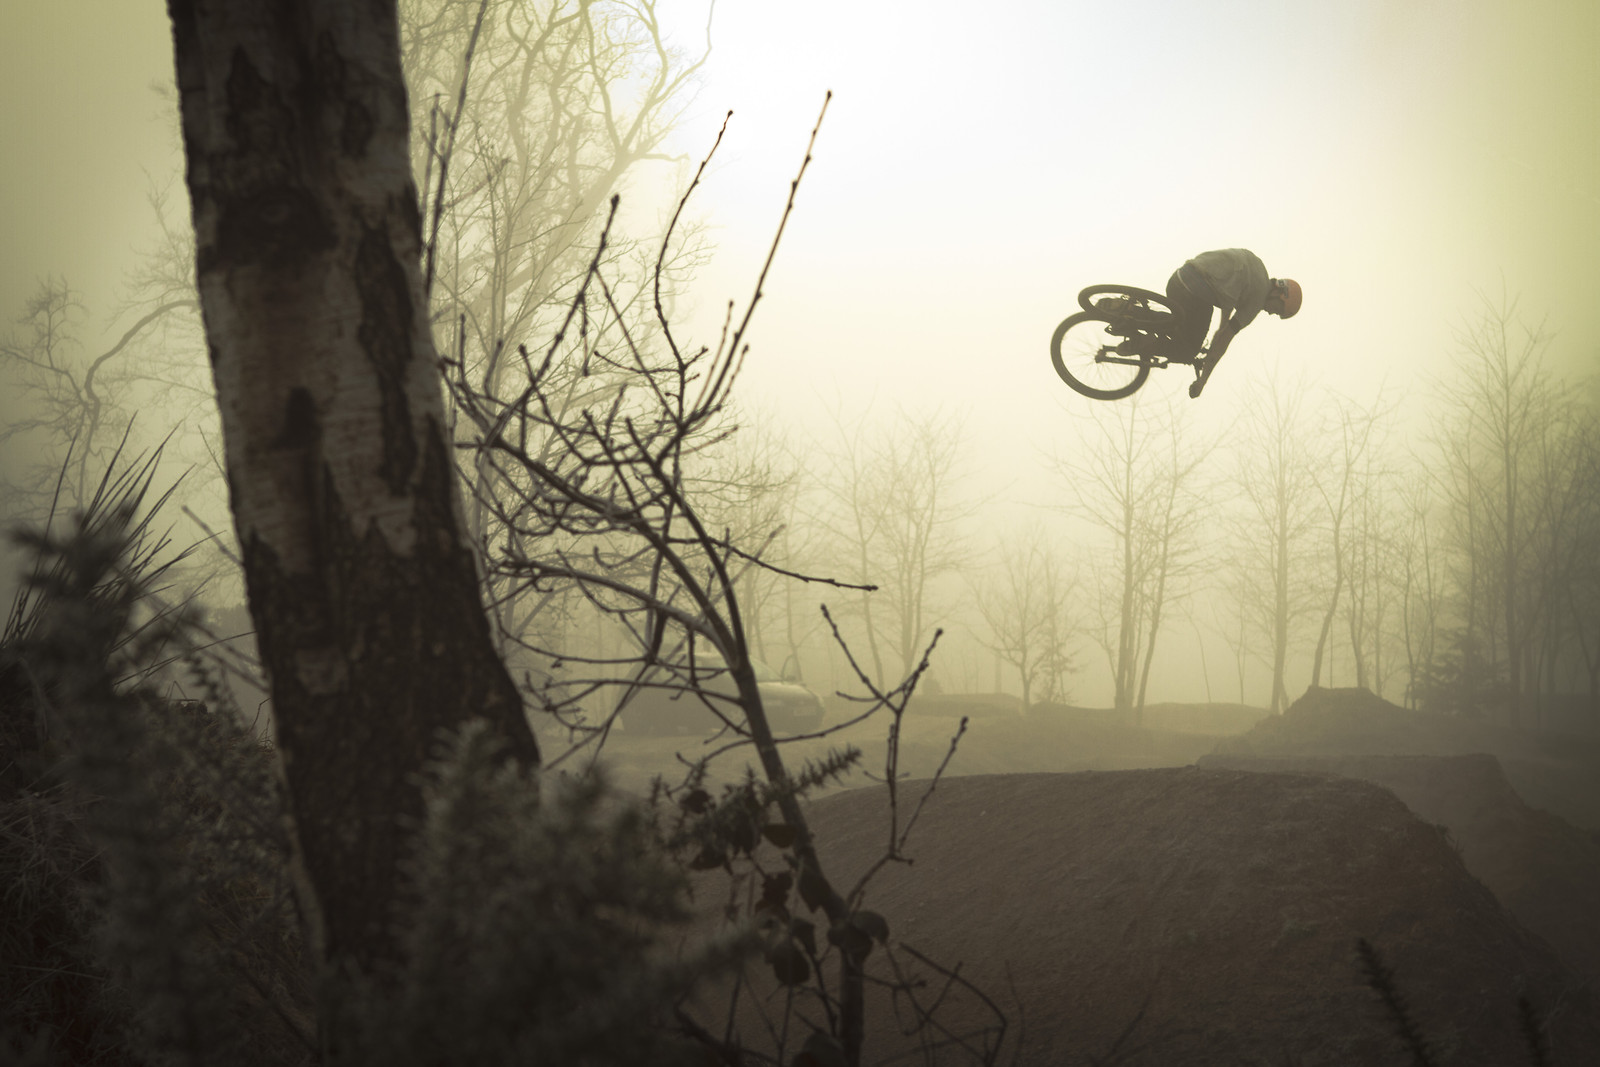 Matt Jones through the fog. - jamieledson - Mountain Biking Pictures - Vital MTB